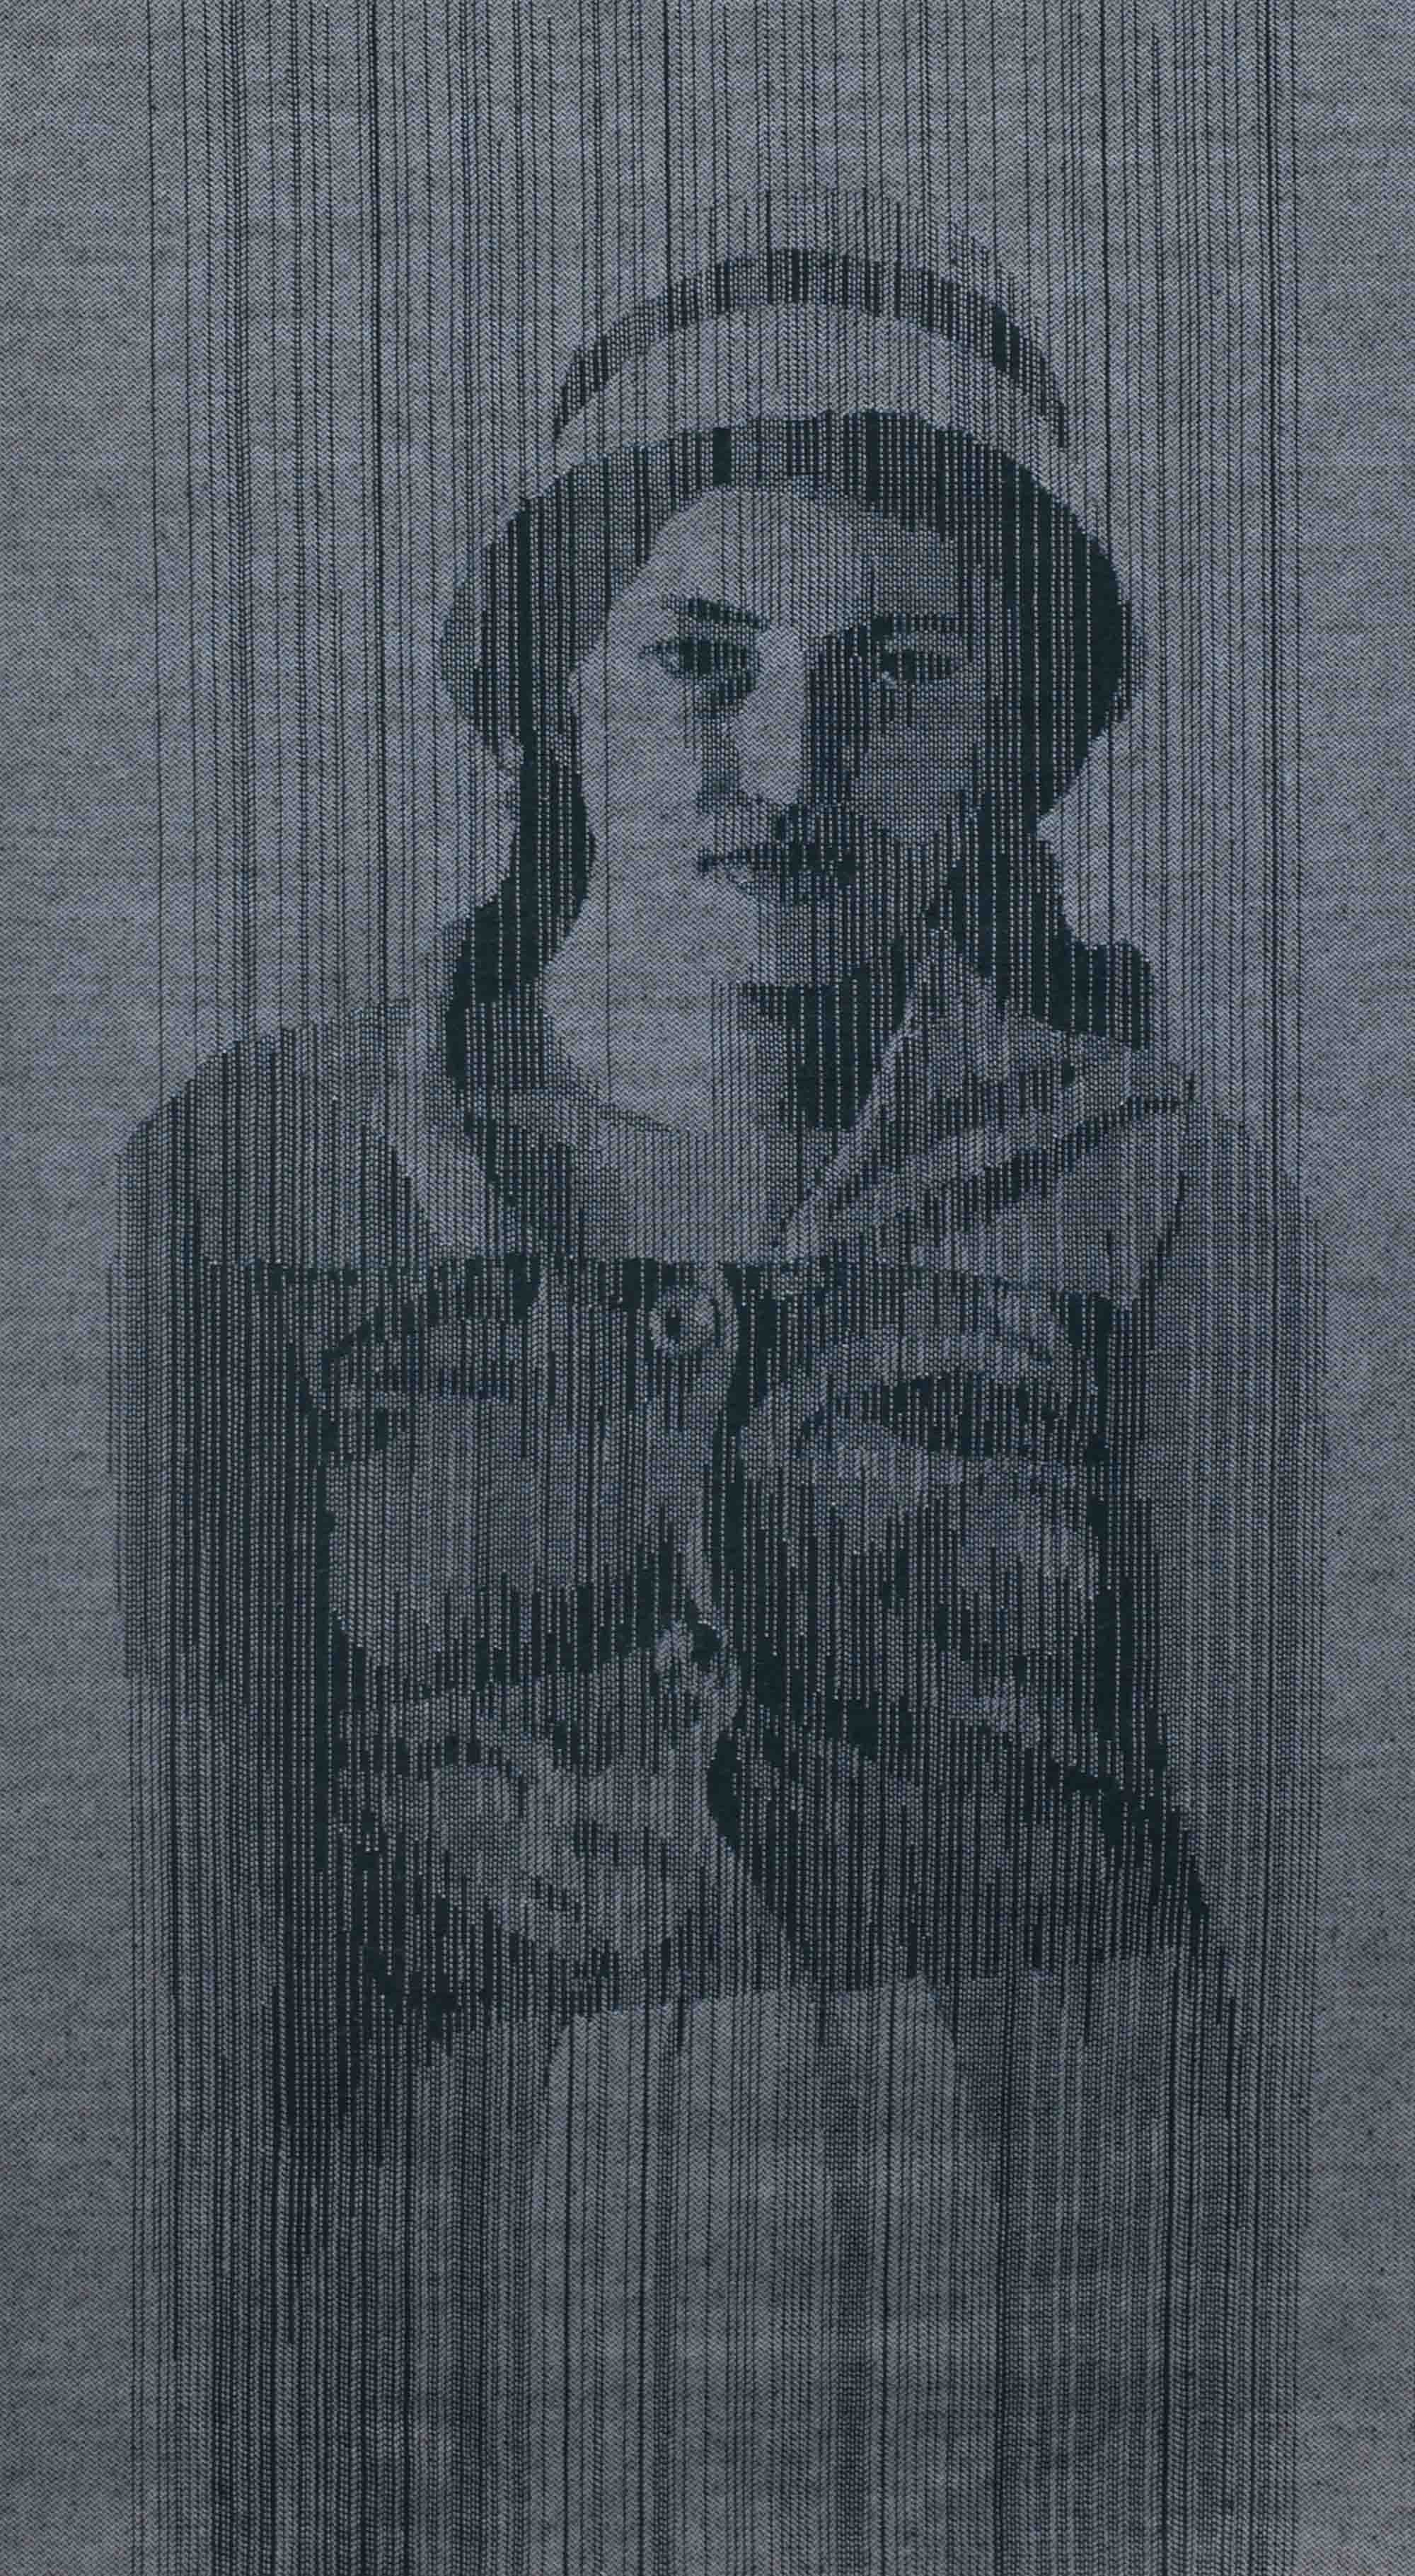 WARP & WEFT - MOTHER   2007 H74, W43 cm Fabric with threads removed Private collection